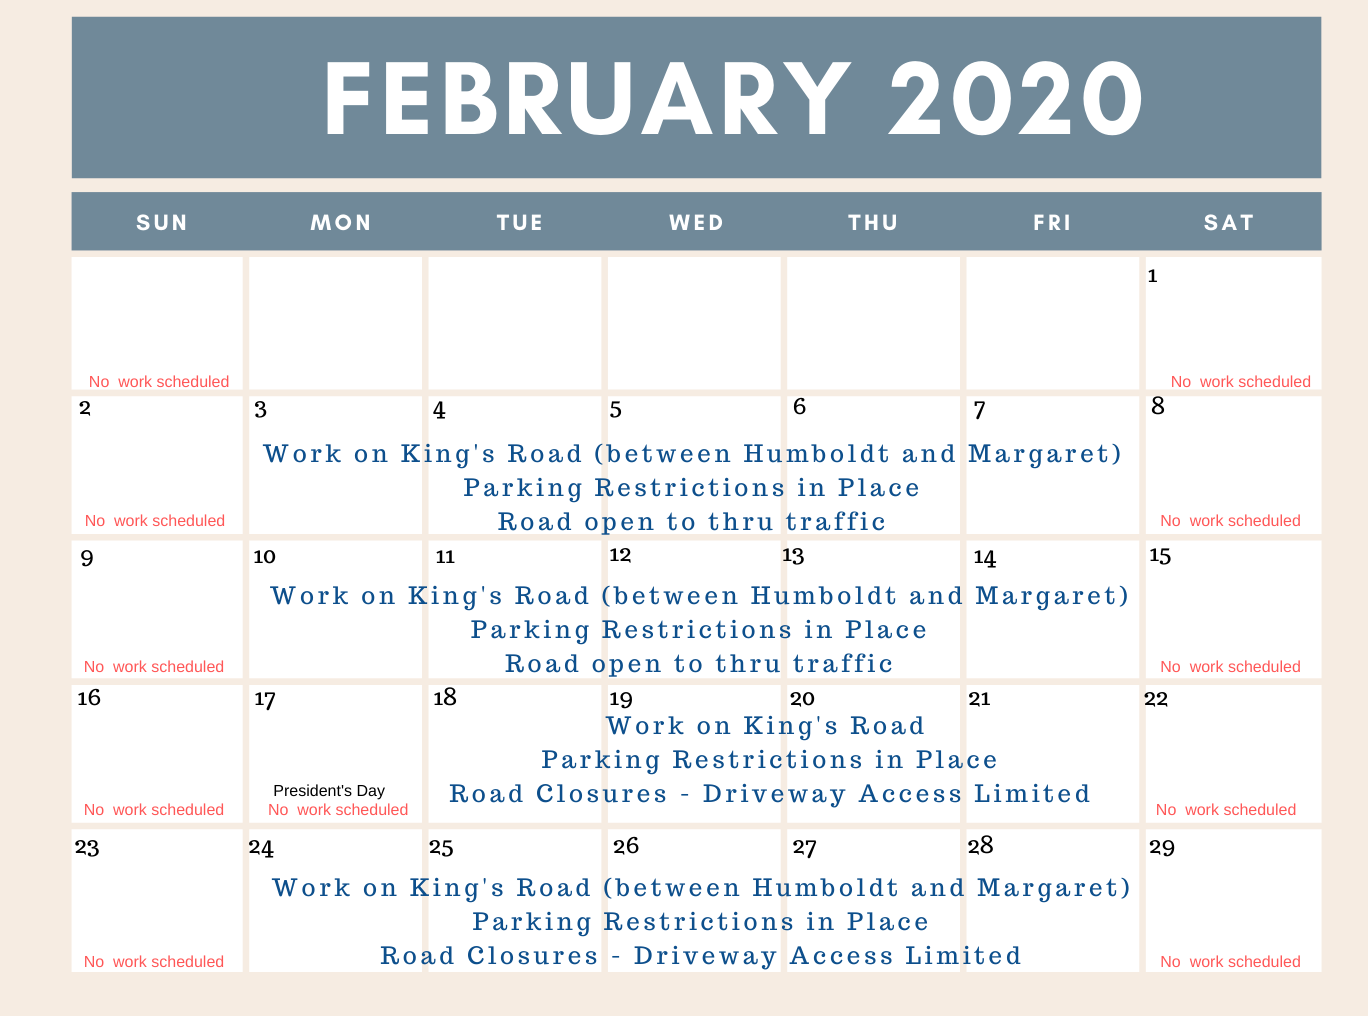 Schedule of work on Kings Road for February 2020